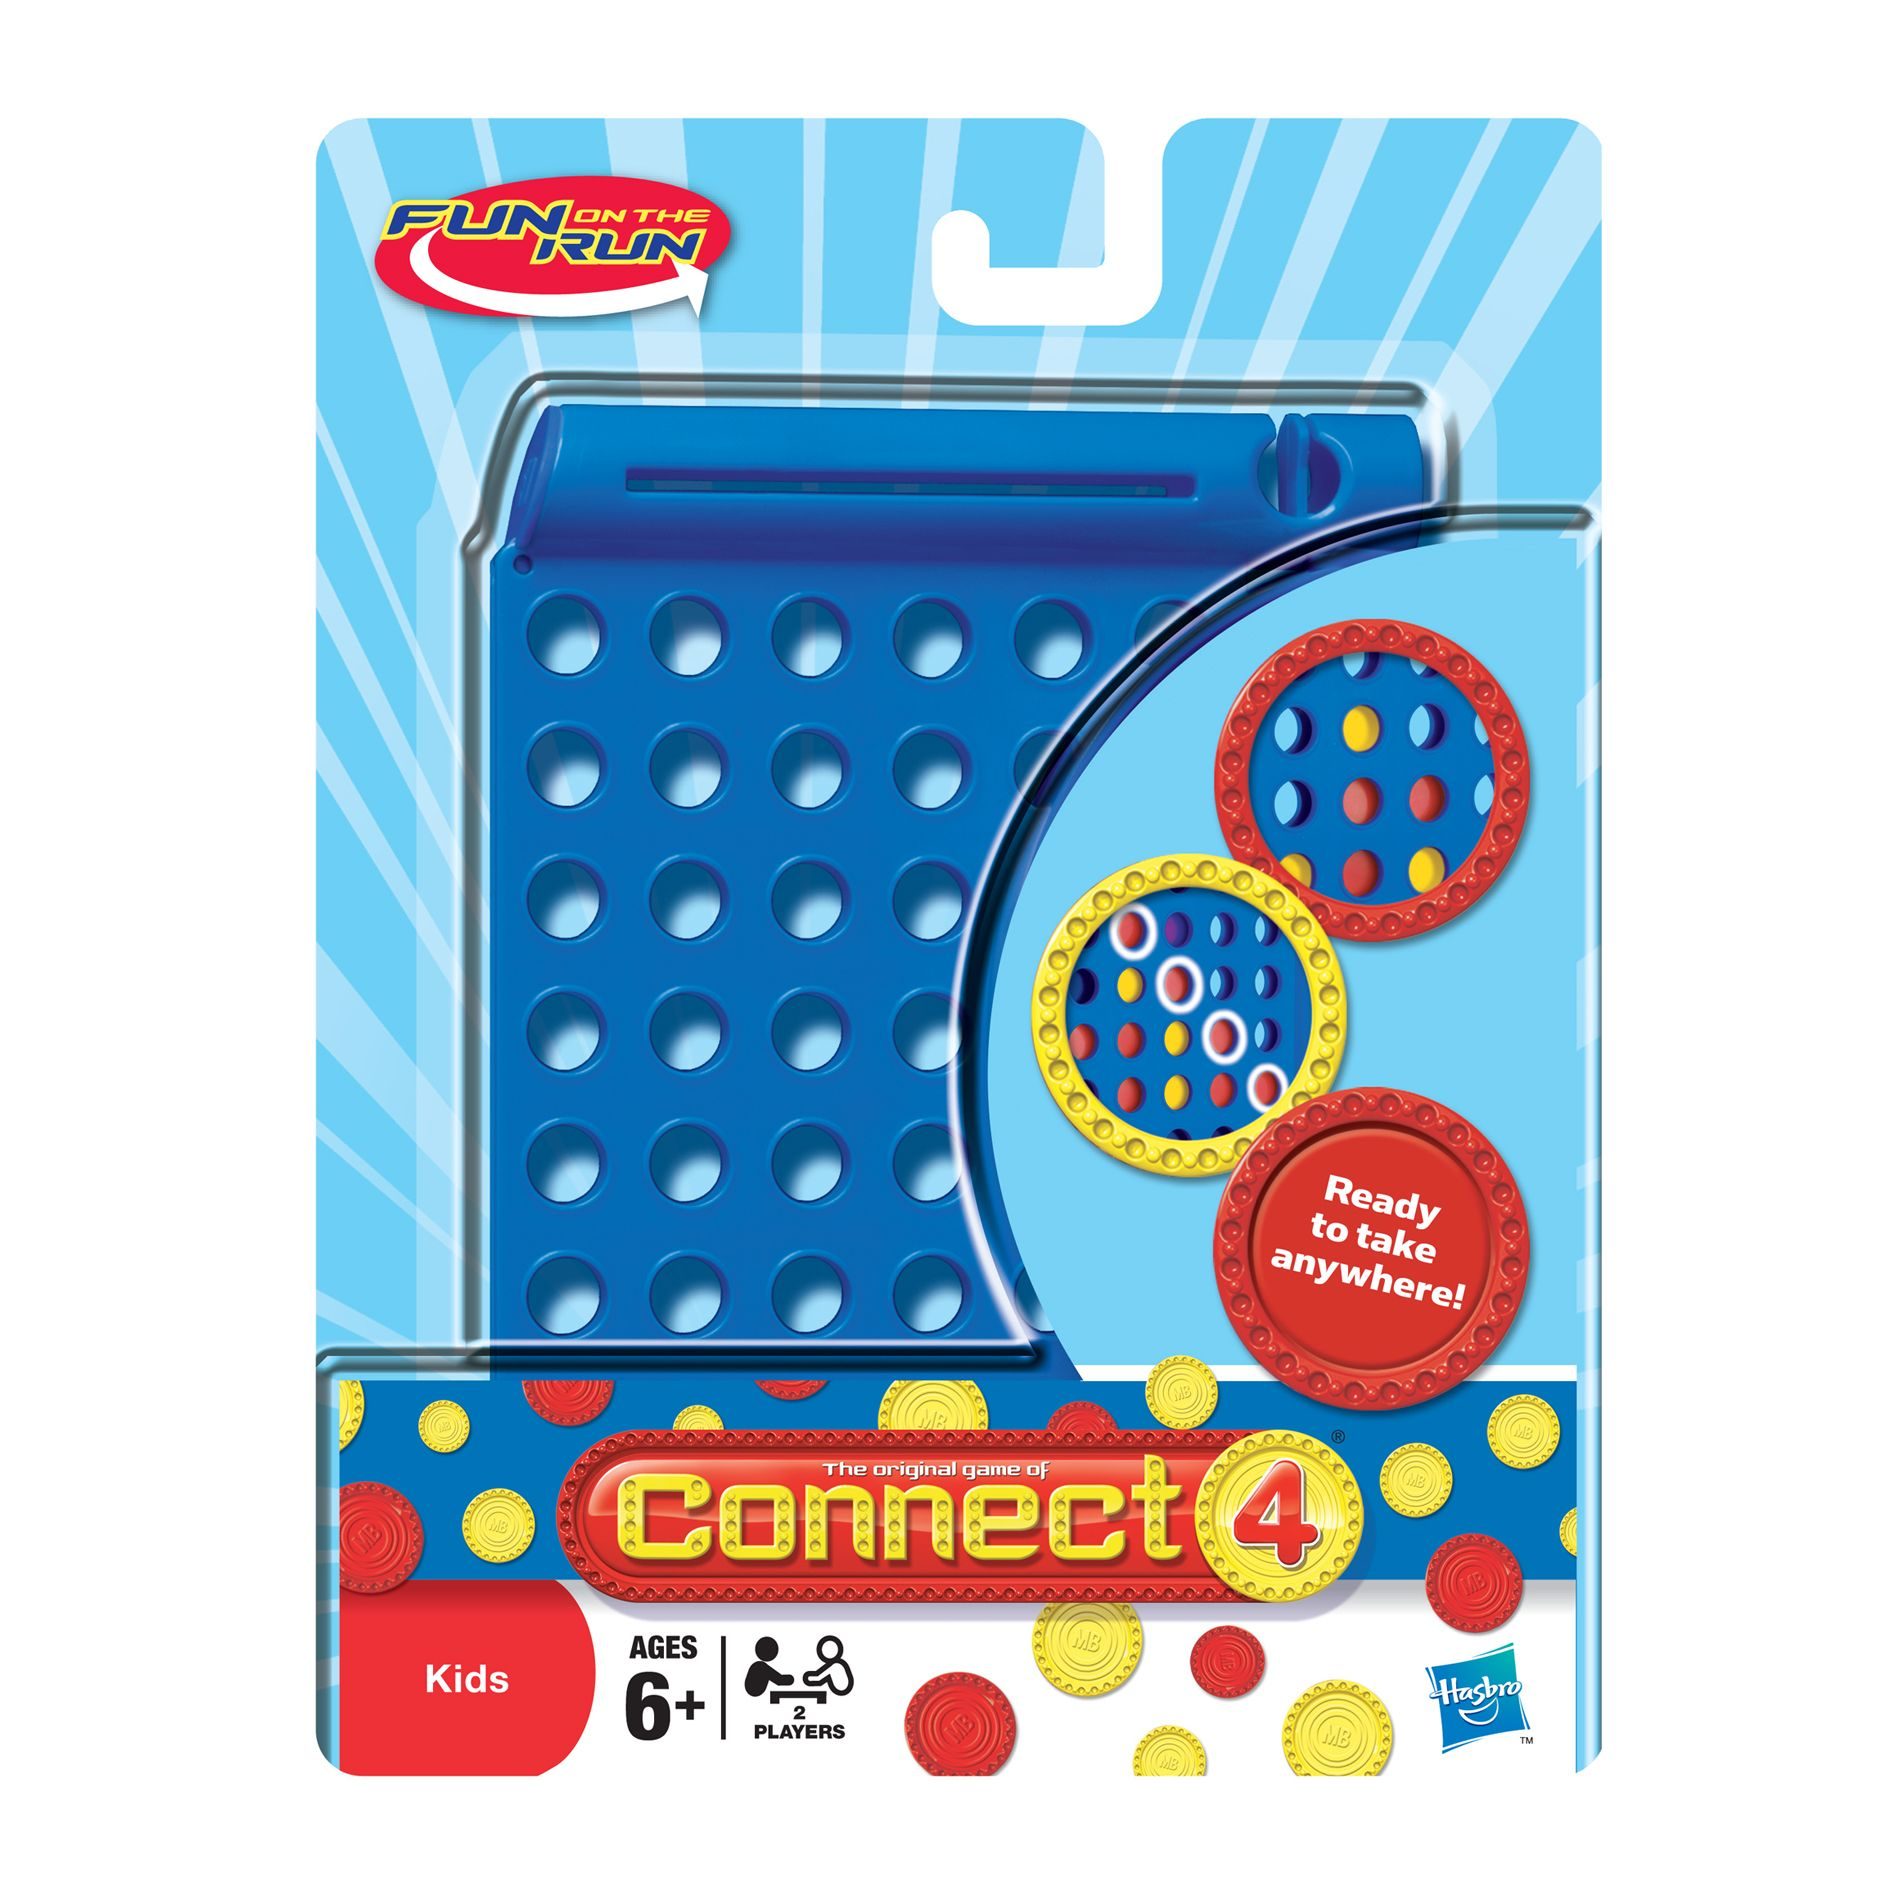 CONNECT 4® FUN ON THE RUN® Game                                                                                        at mygofer.com